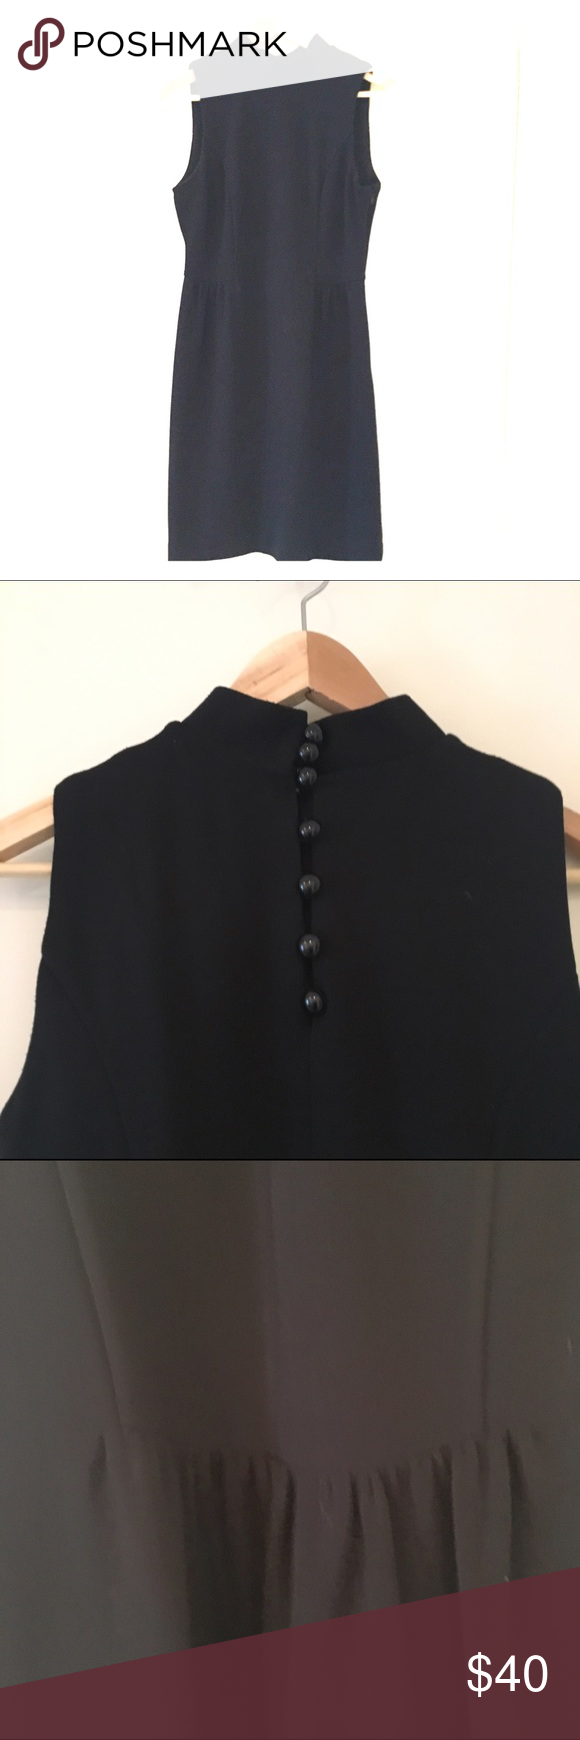 Banana Republic Black Dress A Line with a mock collar - Amazing buttons on the back of the neck. Fits as a 6 Banana Republic Dresses